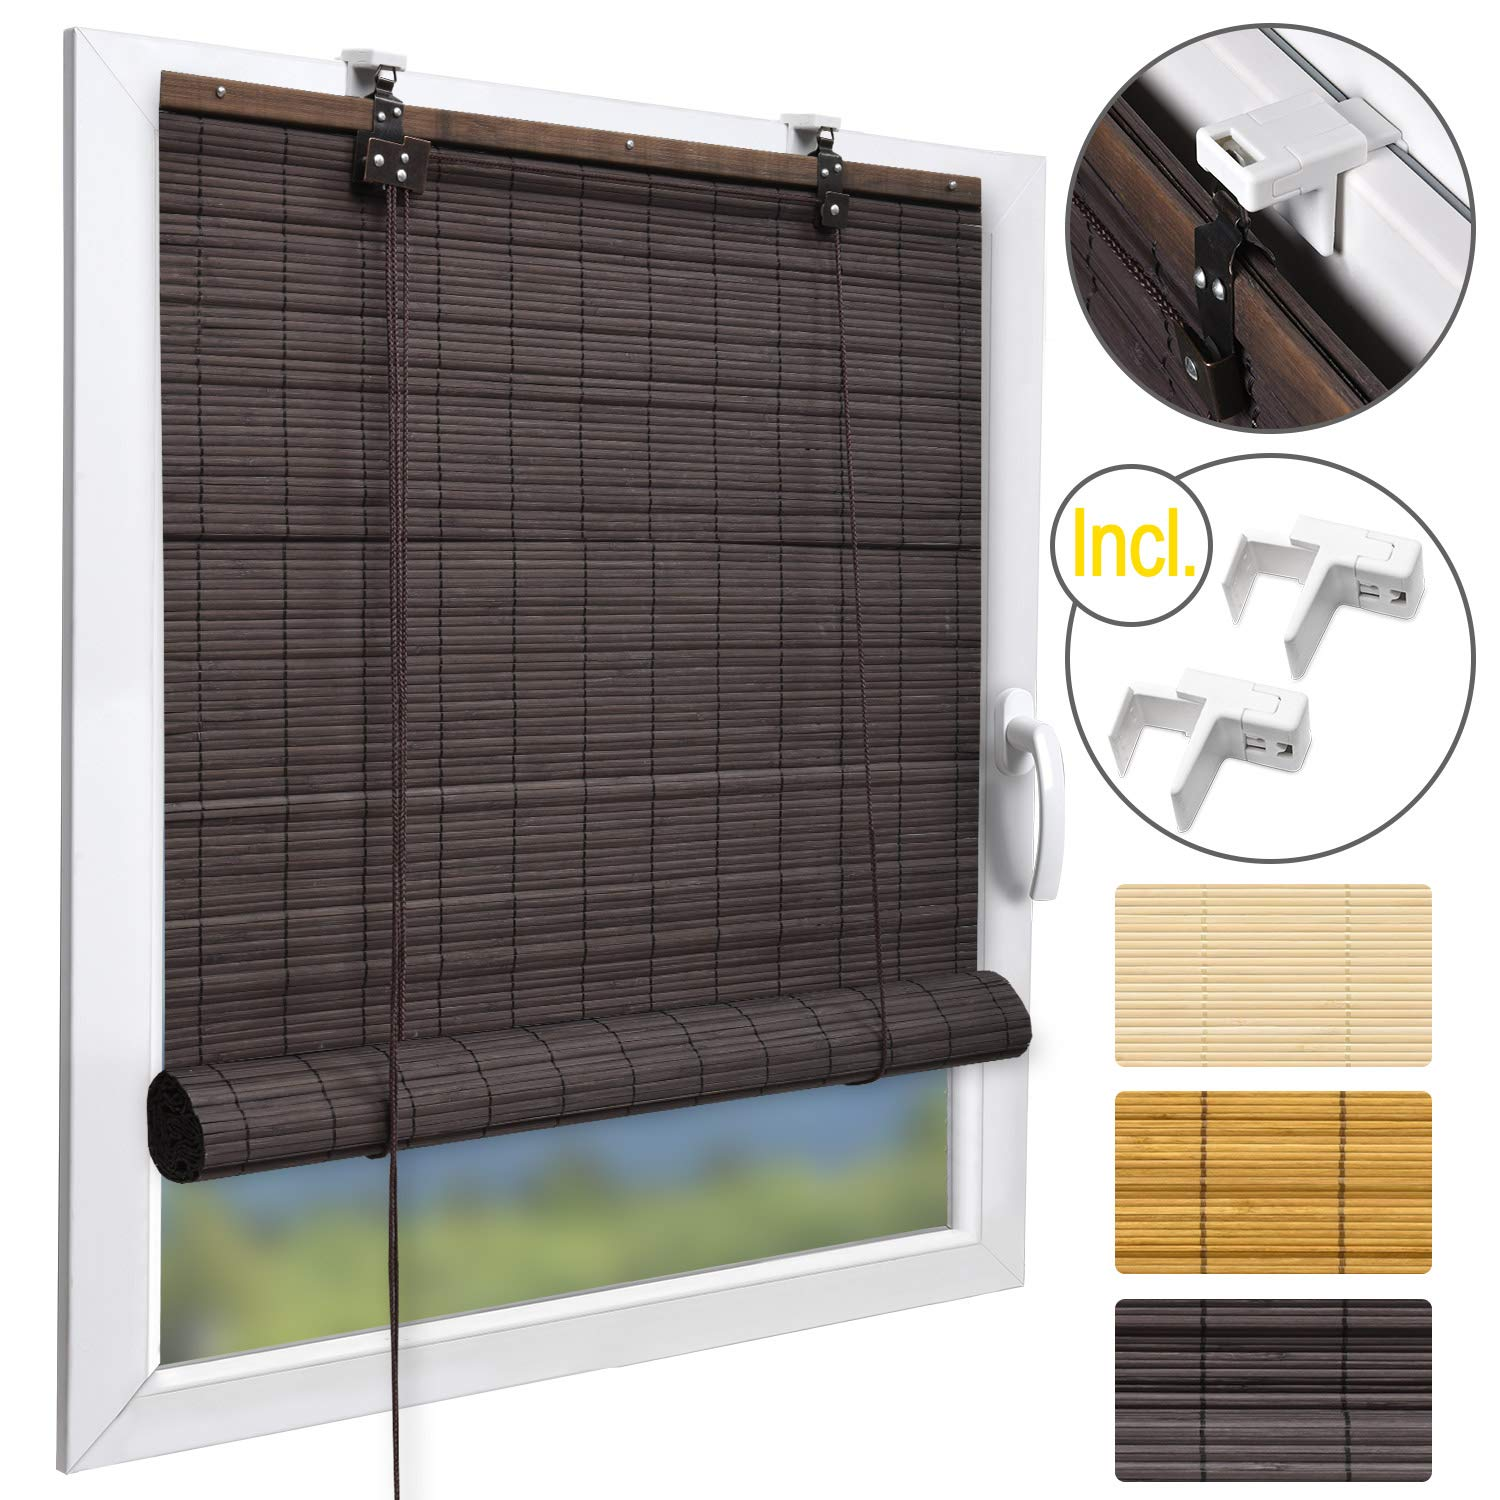 Sol Royal Bamboo Blinds Soldecor B86 No Drilling Brown Roman Blind Clamping Brackets 80x160 Cm Window Roller Blind Buy Online In El Salvador At Elsalvador Desertcart Com Productid 69607629